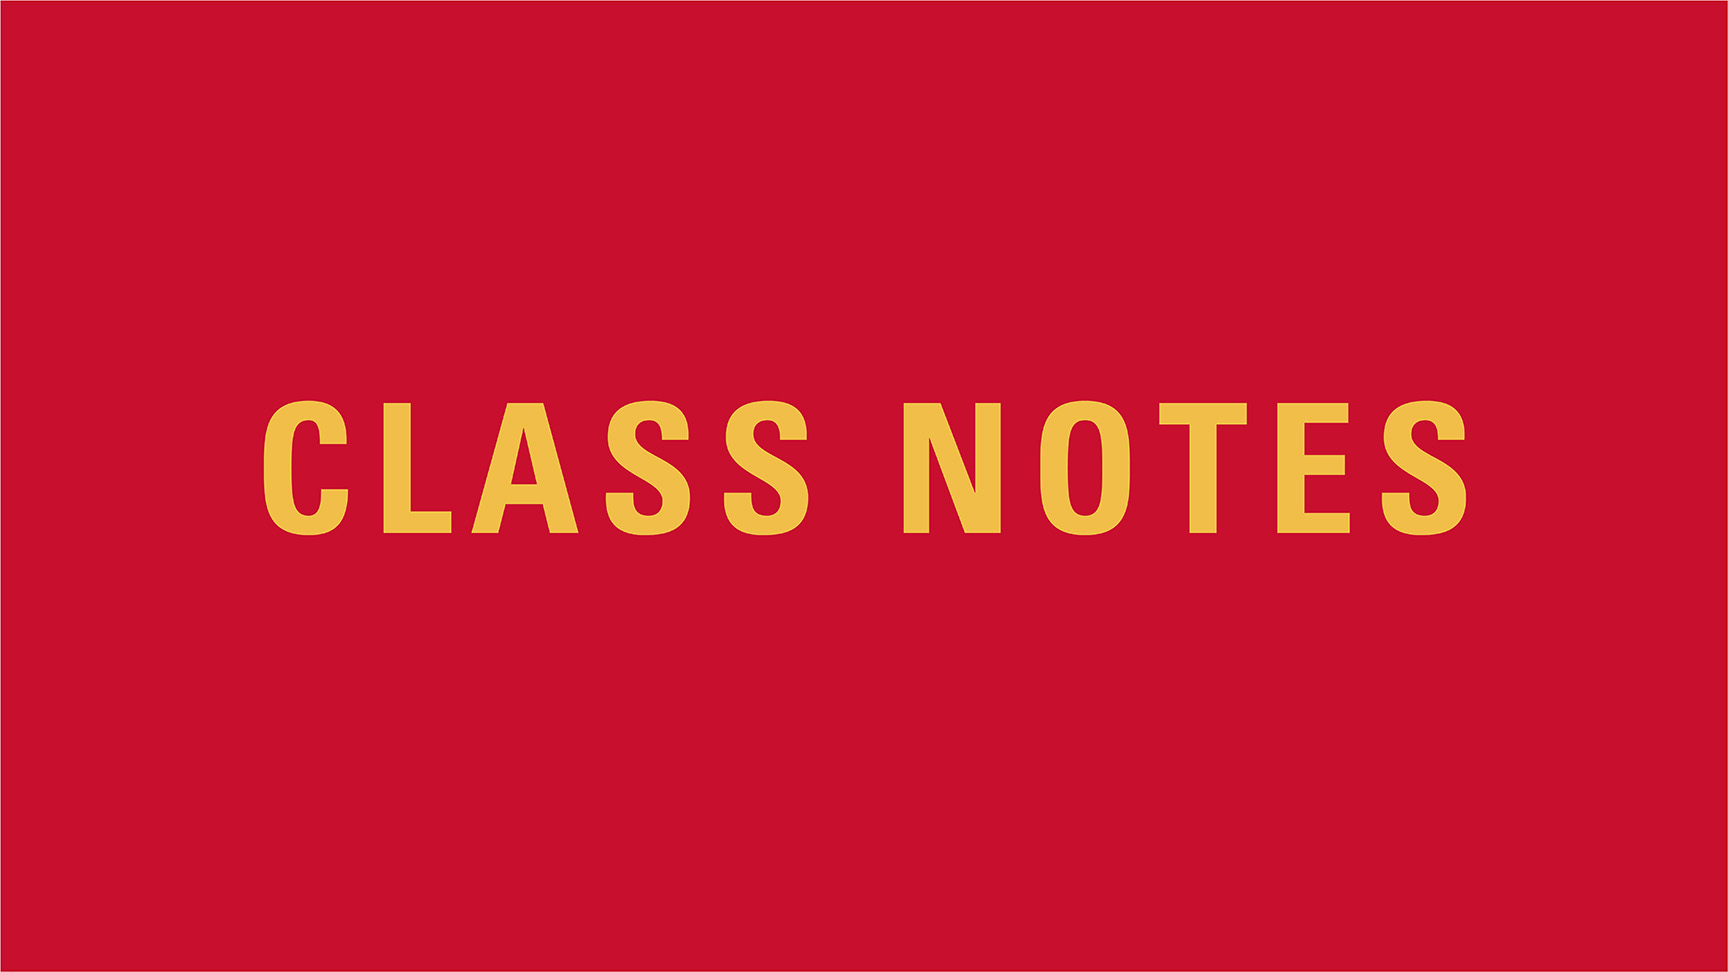 Class Notes graphic